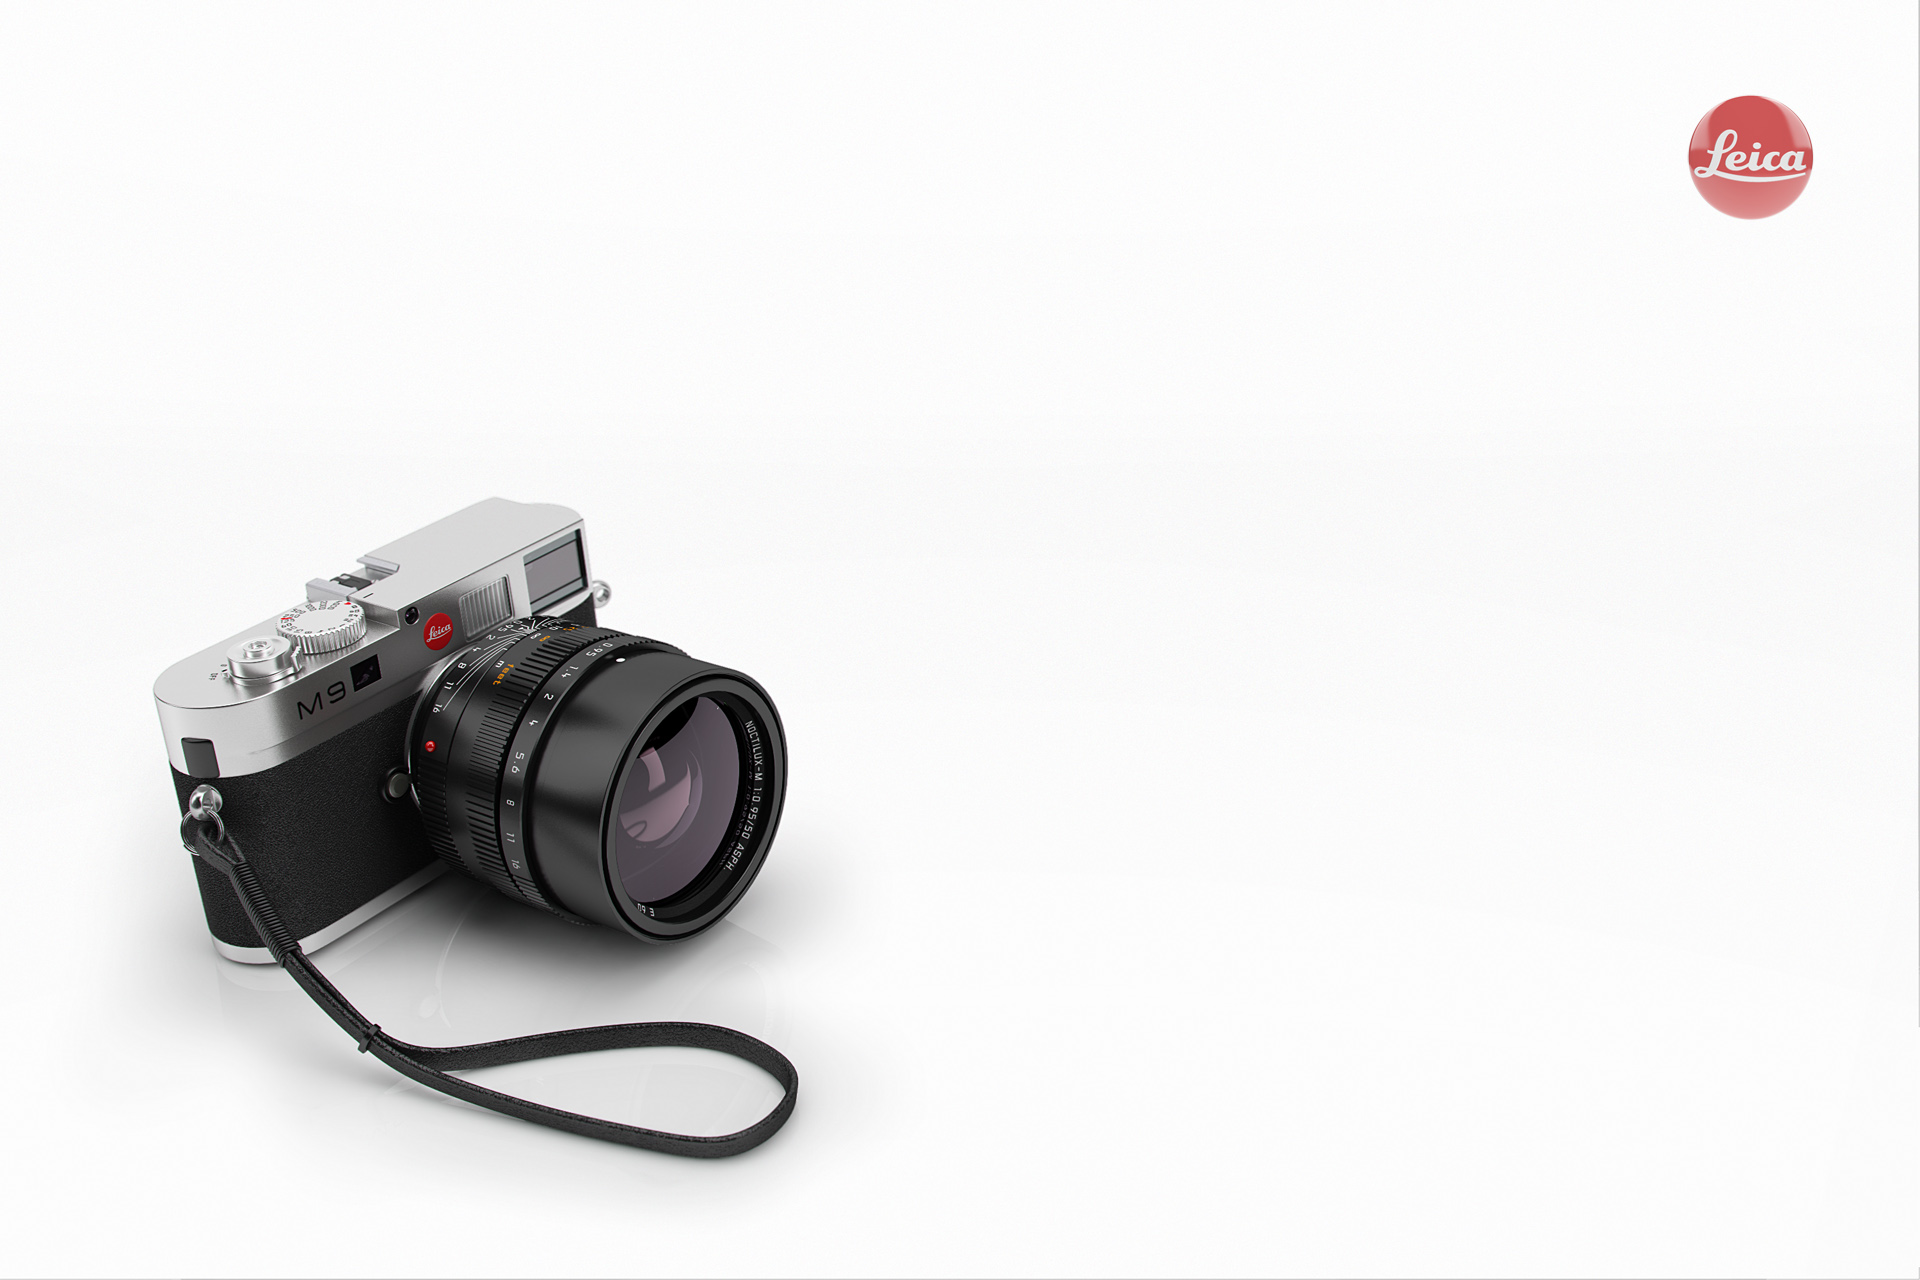 leica 3d cam02 by leto1987 on deviantART